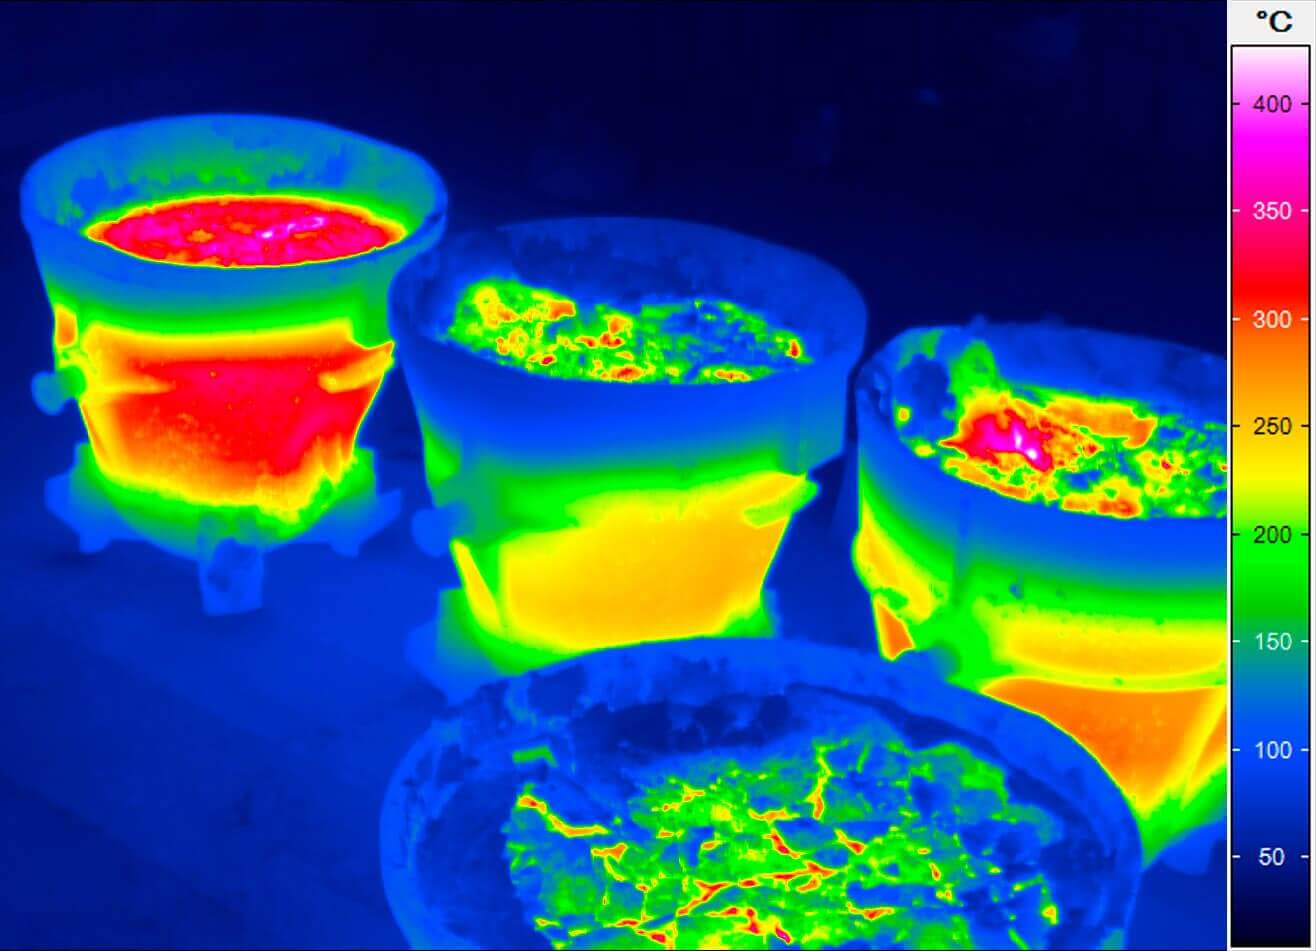 Thermal image of pans